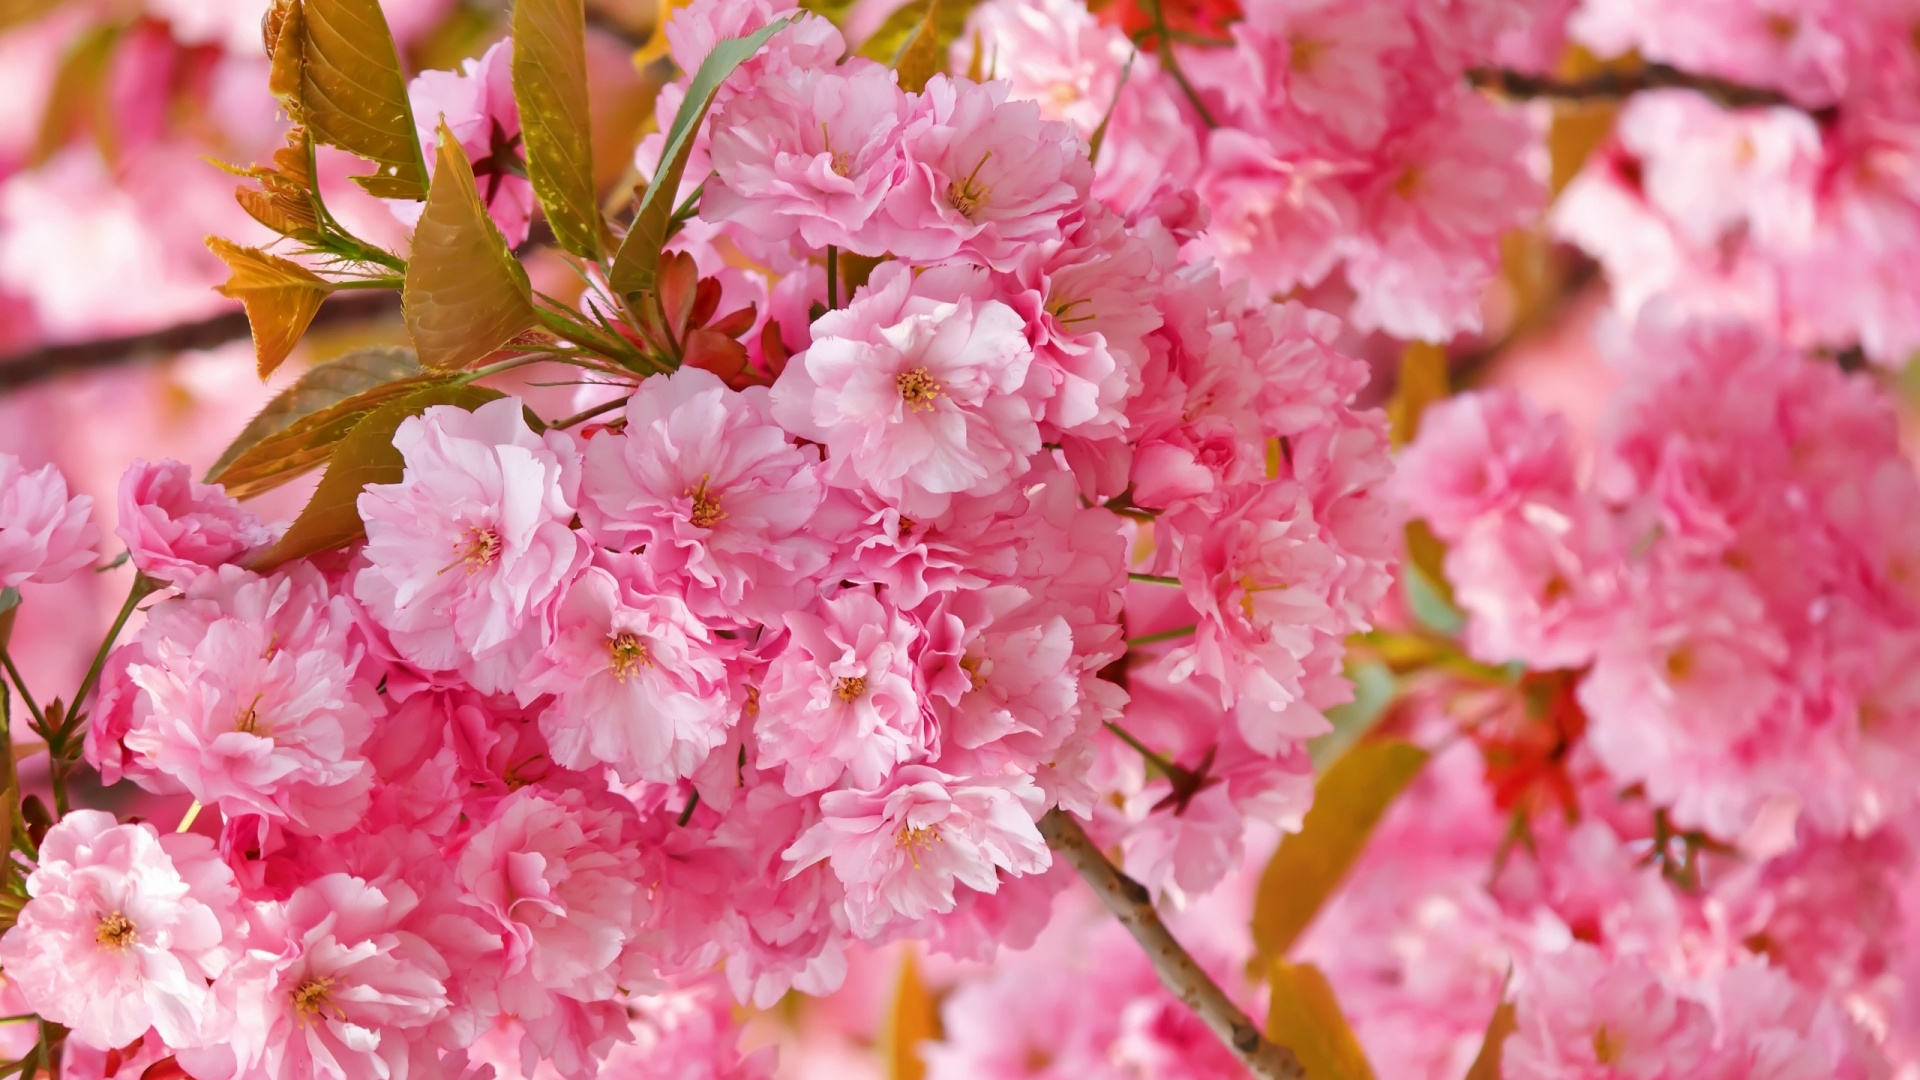 Free Wallpaper Fall Flowers Flowers Cherry Blossom Wallpapers Airwallpaper Com